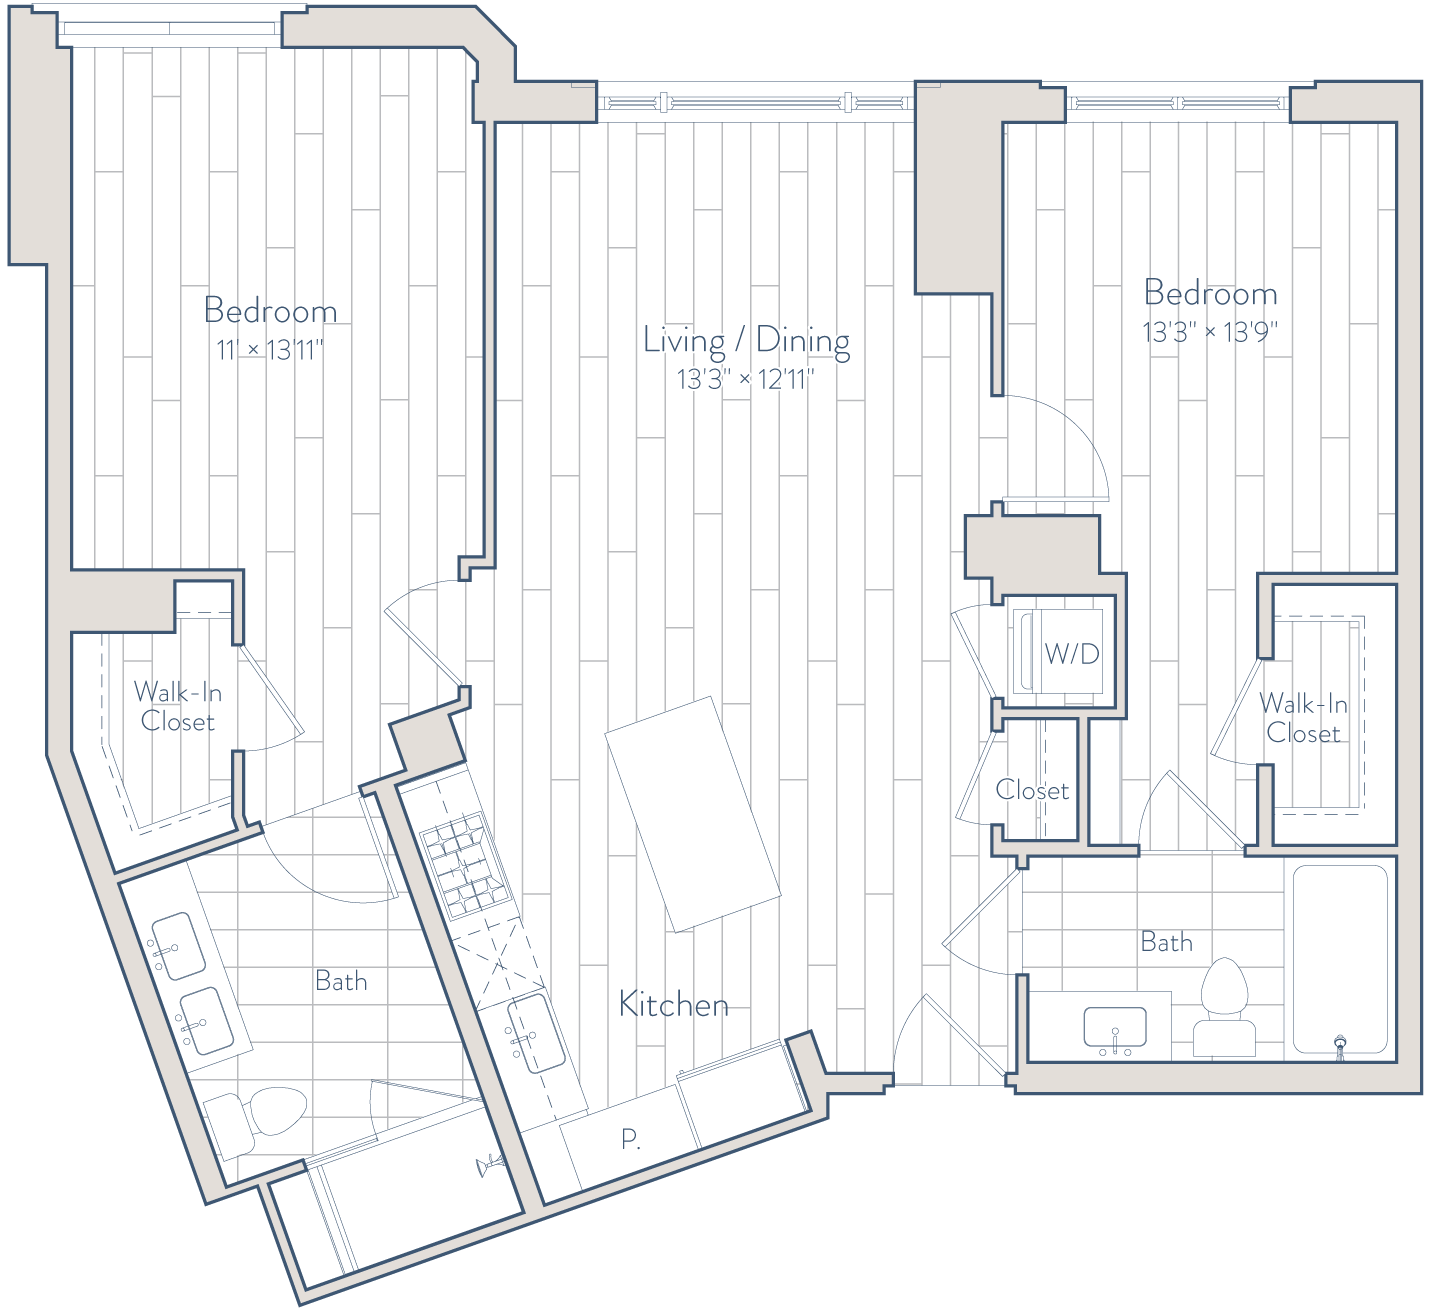 Floor plan of apartment 1023